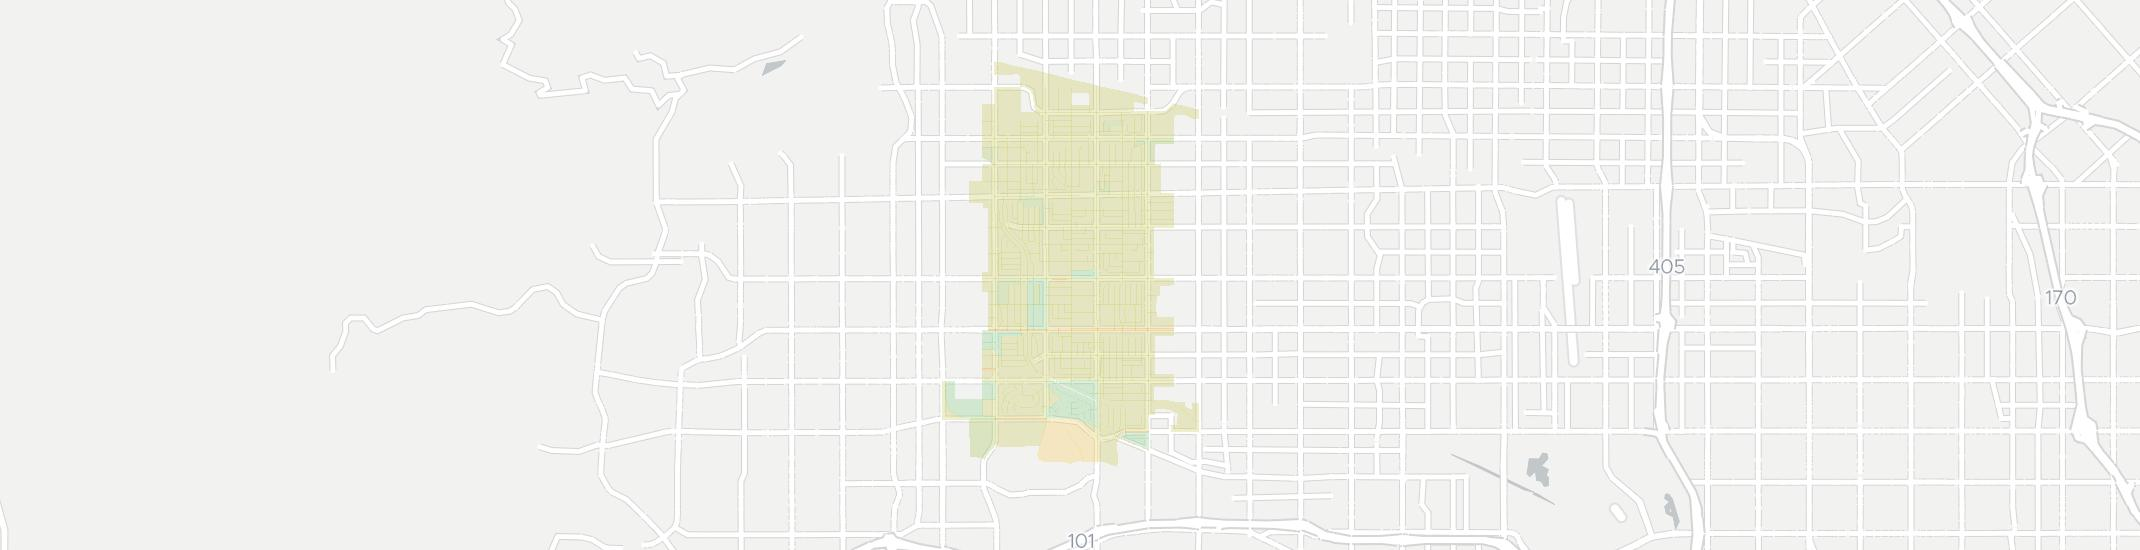 Winnetka Internet Competition Map. Click for interactive map.